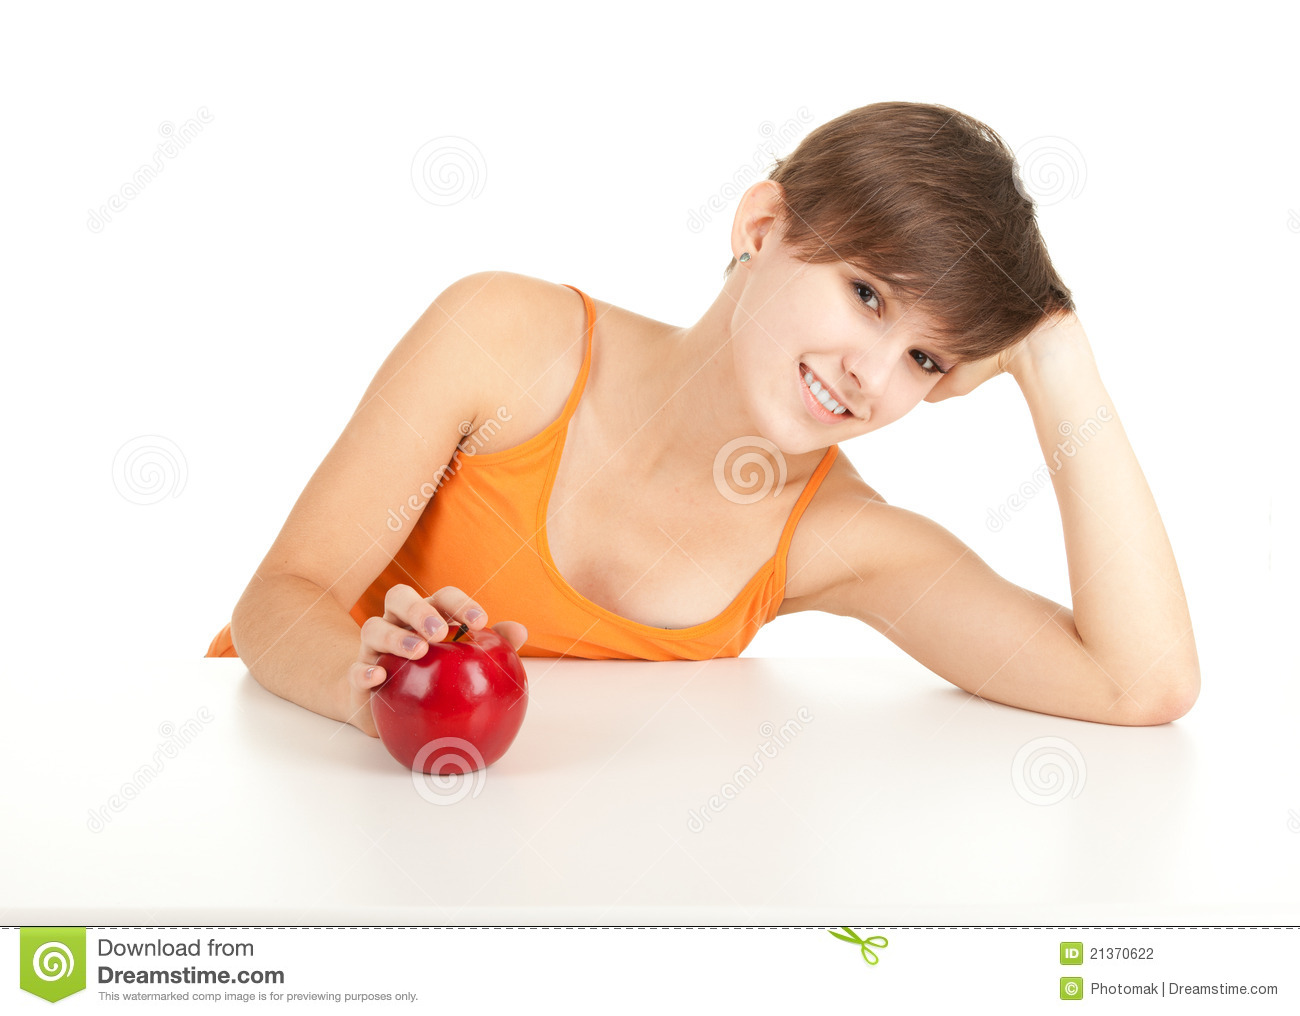 wonderful Girl Table Part - 5: Girl with red apple leaning on table